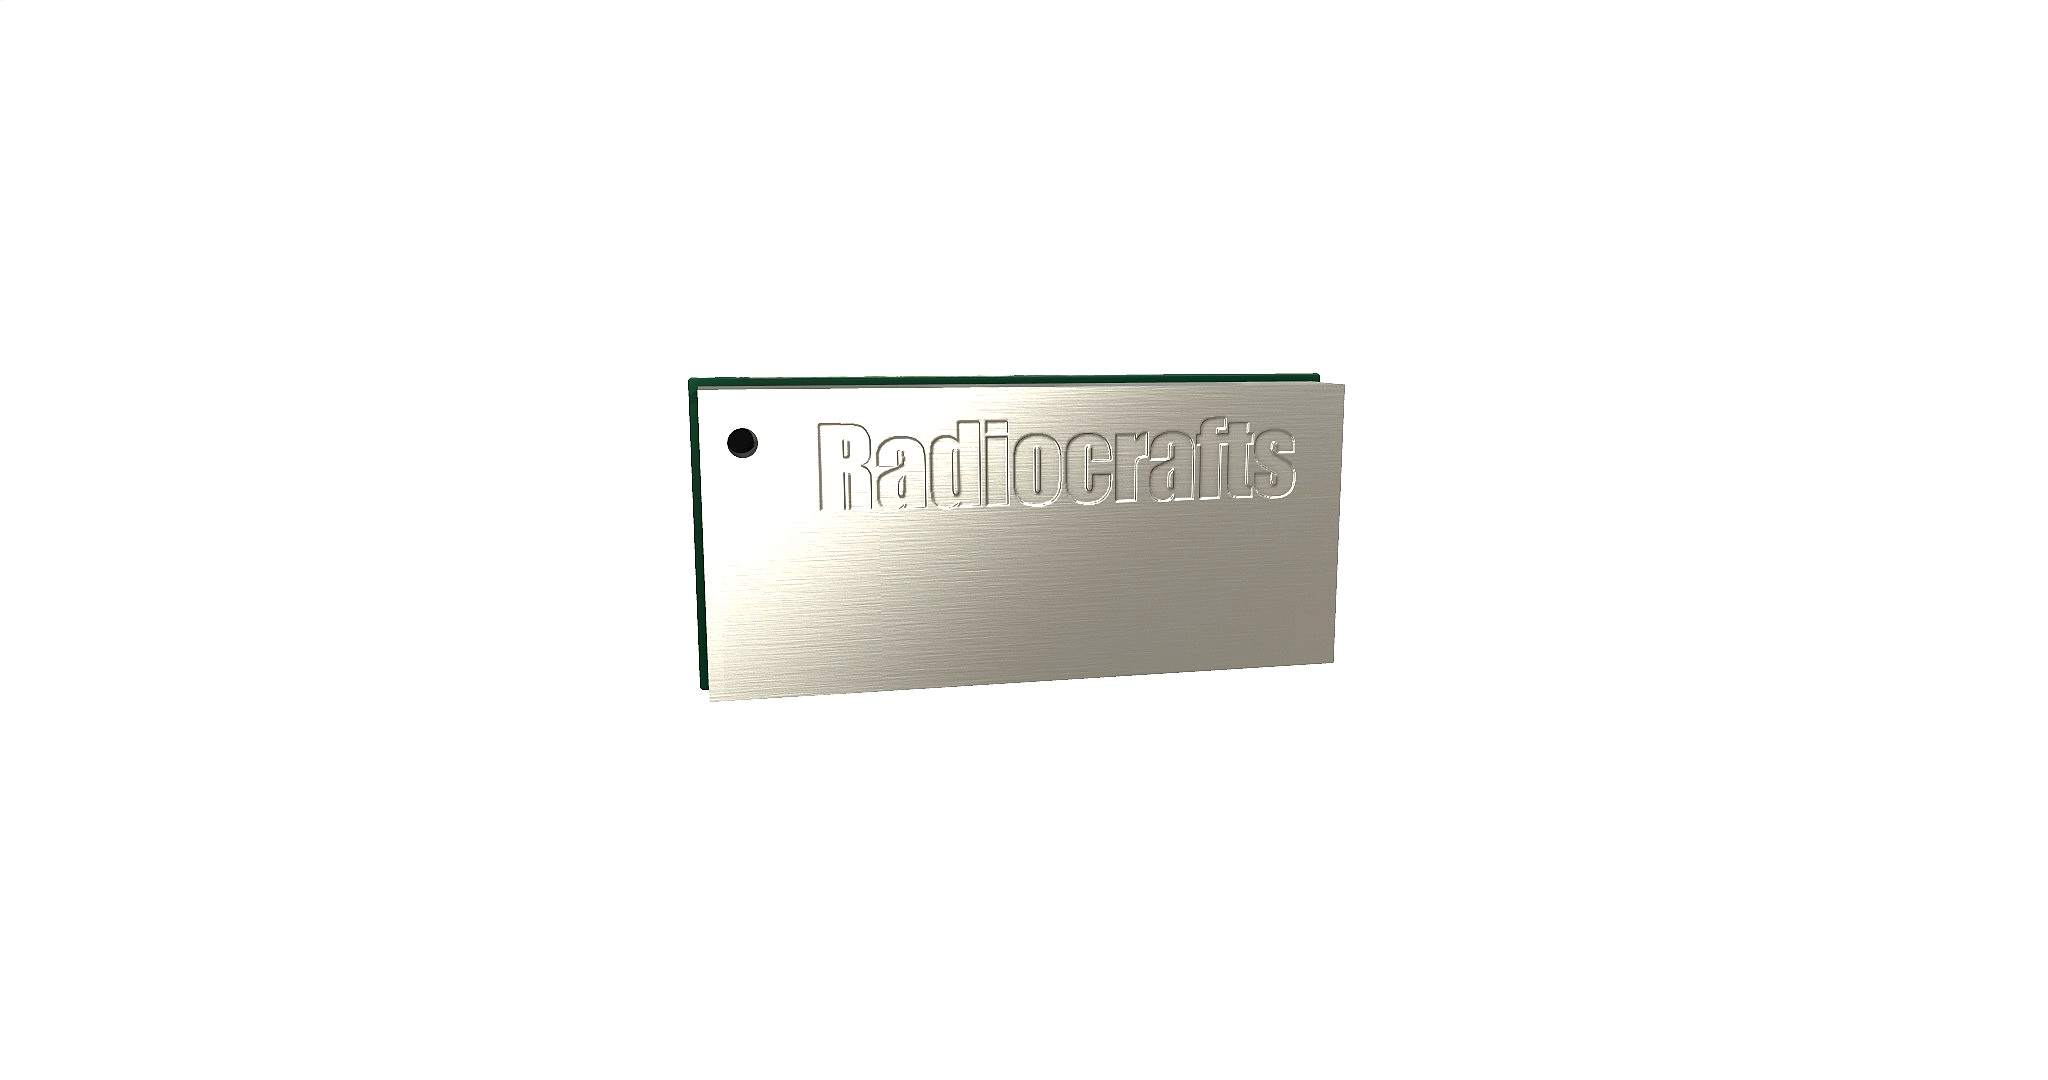 Radiocrafts Modules - GREATECH is distributor and tech partner of Radiocrafts from day one. The Scandinavian high-tech module designer and manufacturer provides some of the best wireless modules in the global market. Order small and large quantities directly from GREATECH.